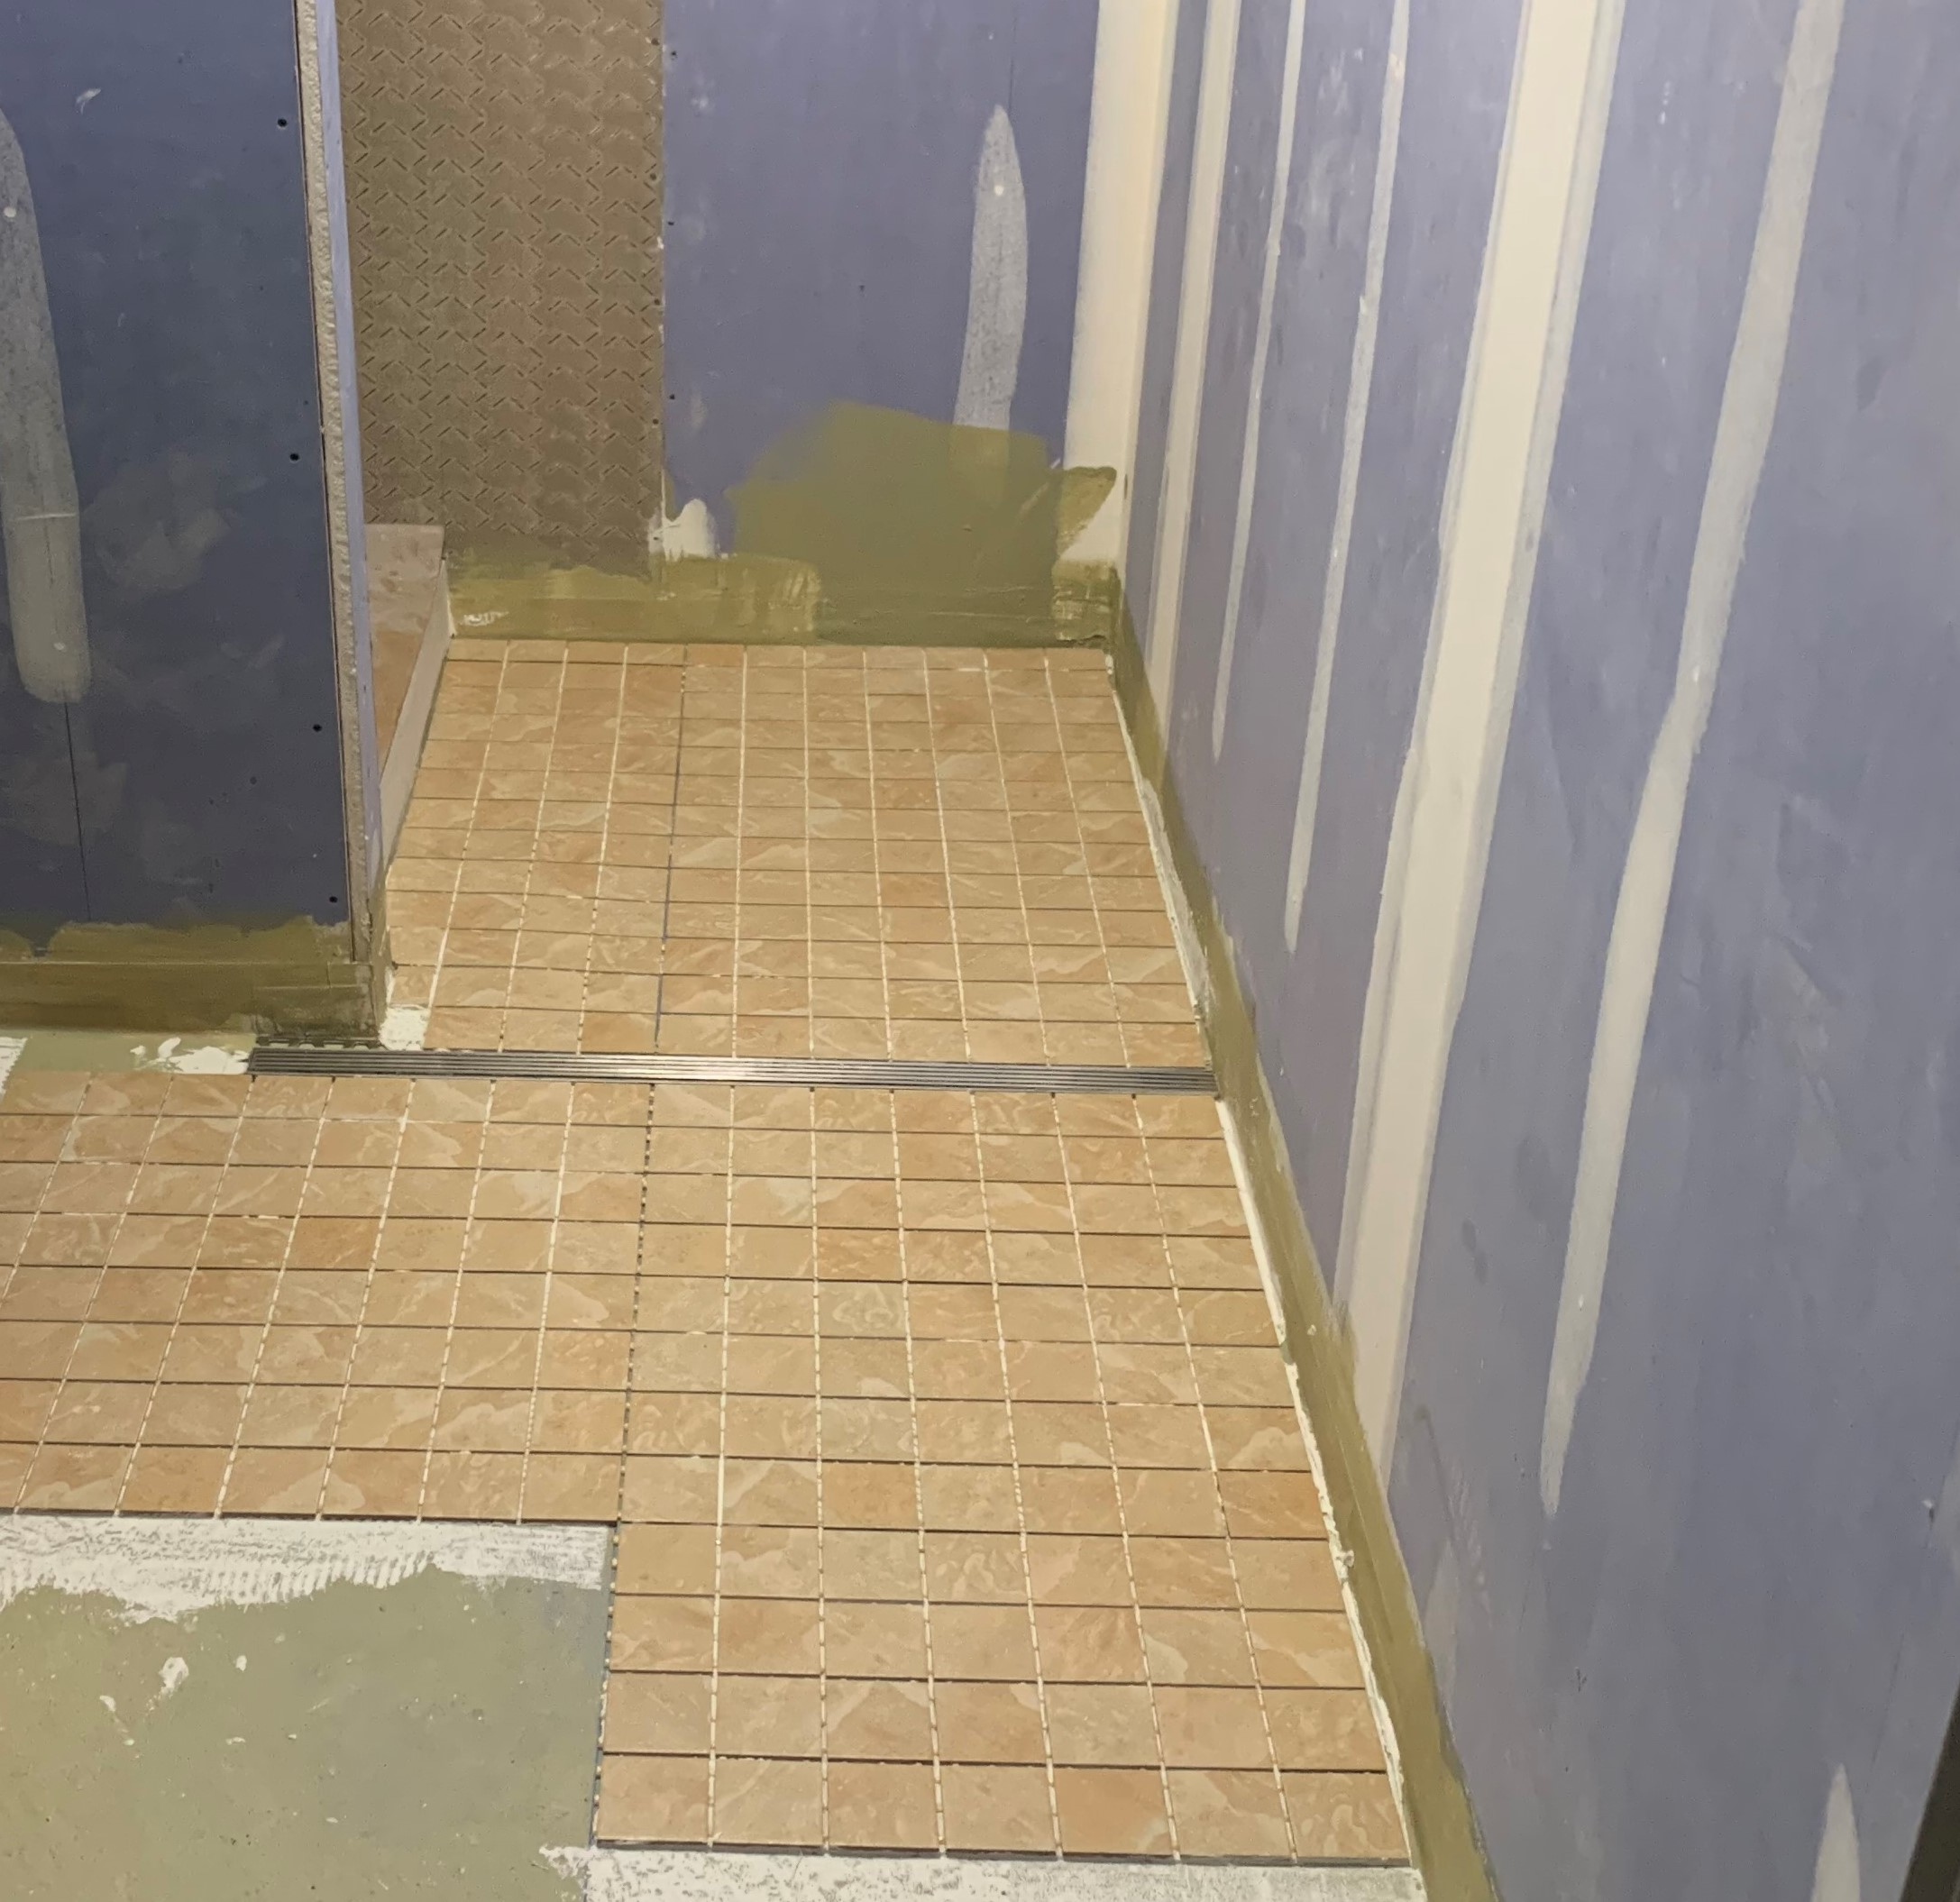 Kent Hall Bathroom Under Renovation